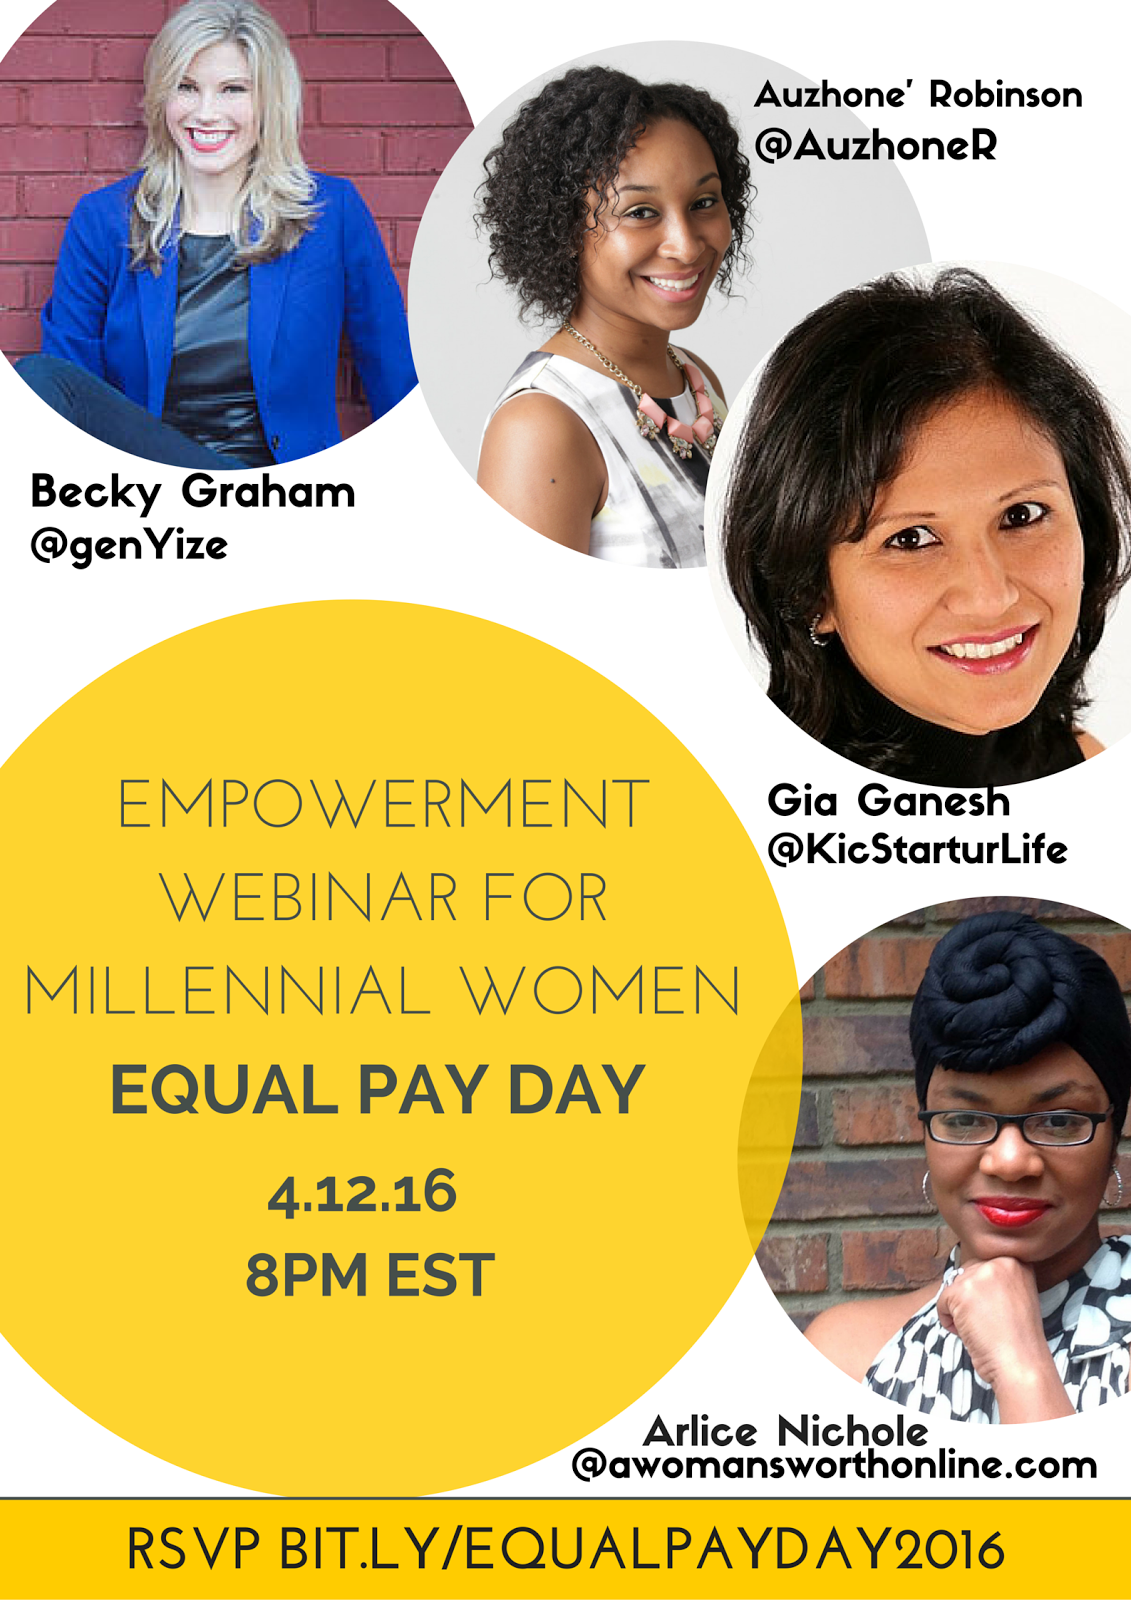 Join us for an empowering #EqualPayDay webinar!